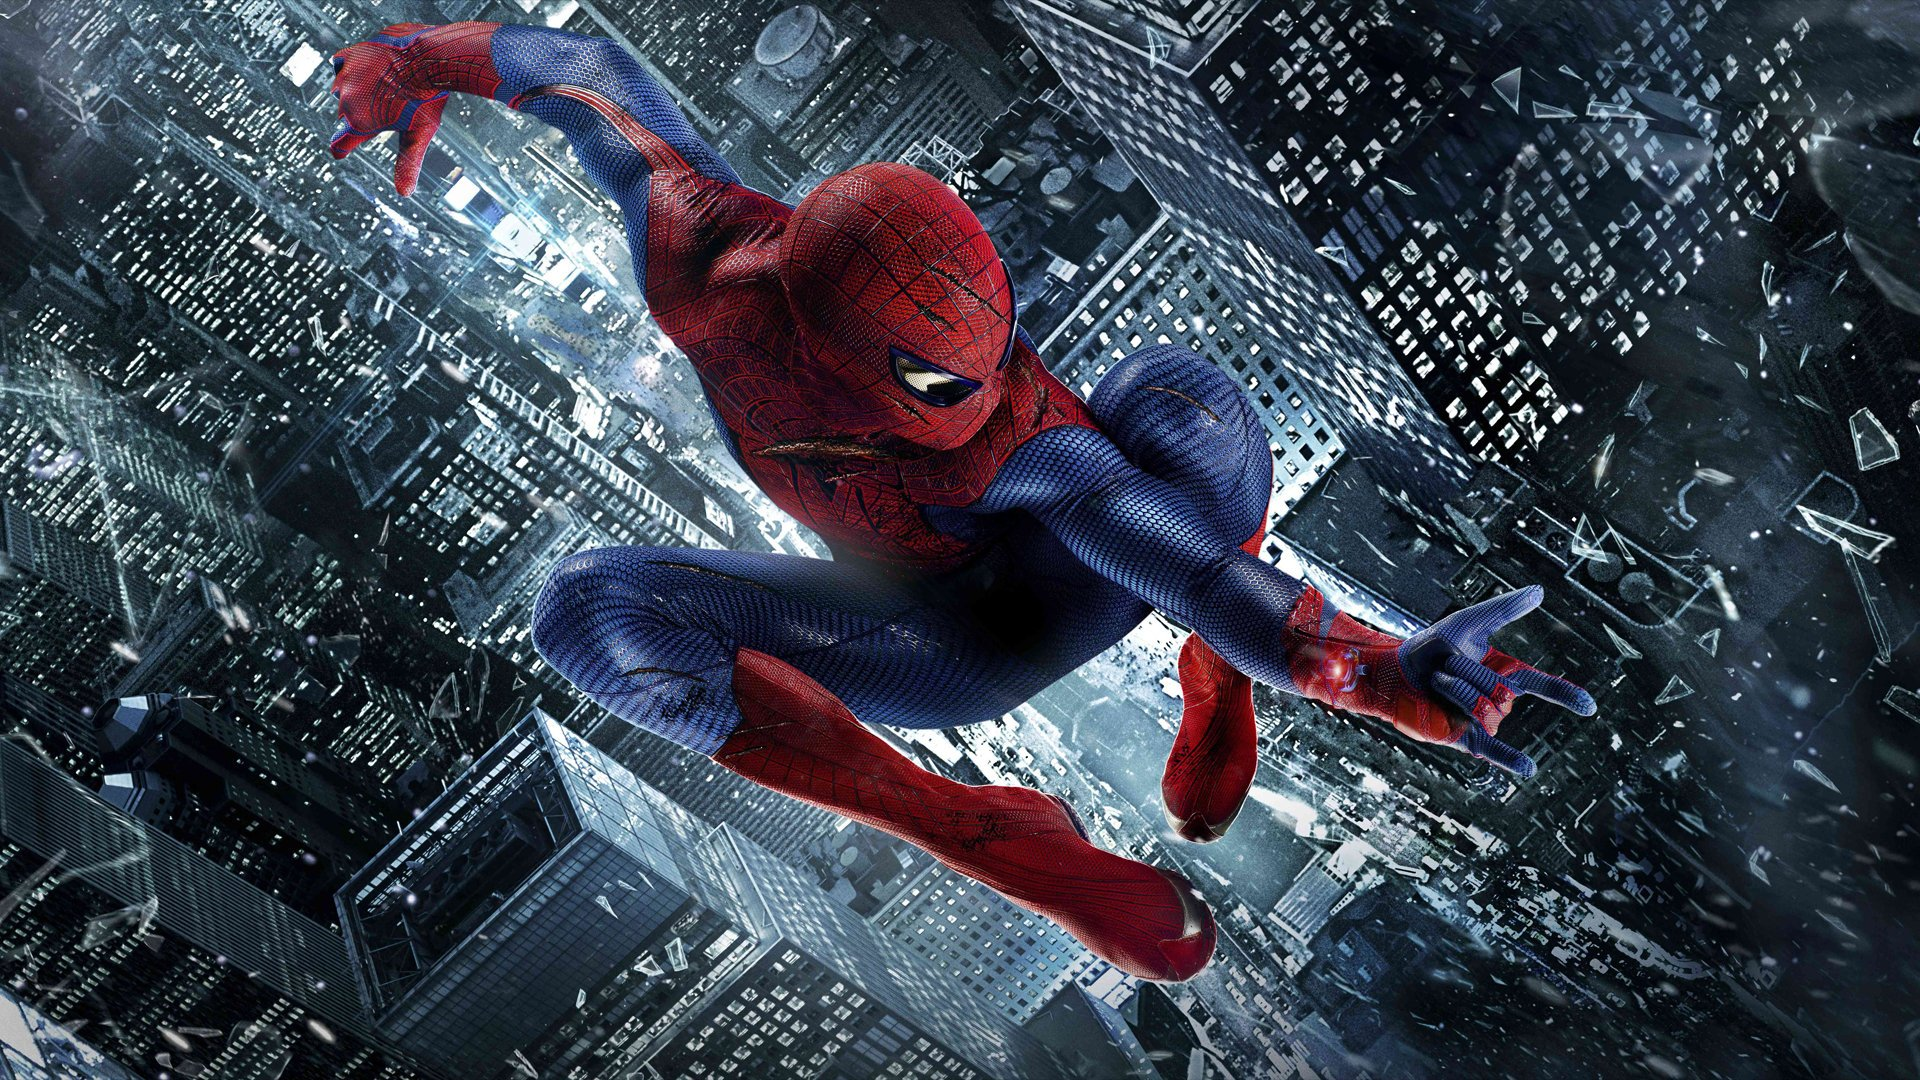 Spiderman HD Wallpaper 1920x1080 - WallpaperSafari